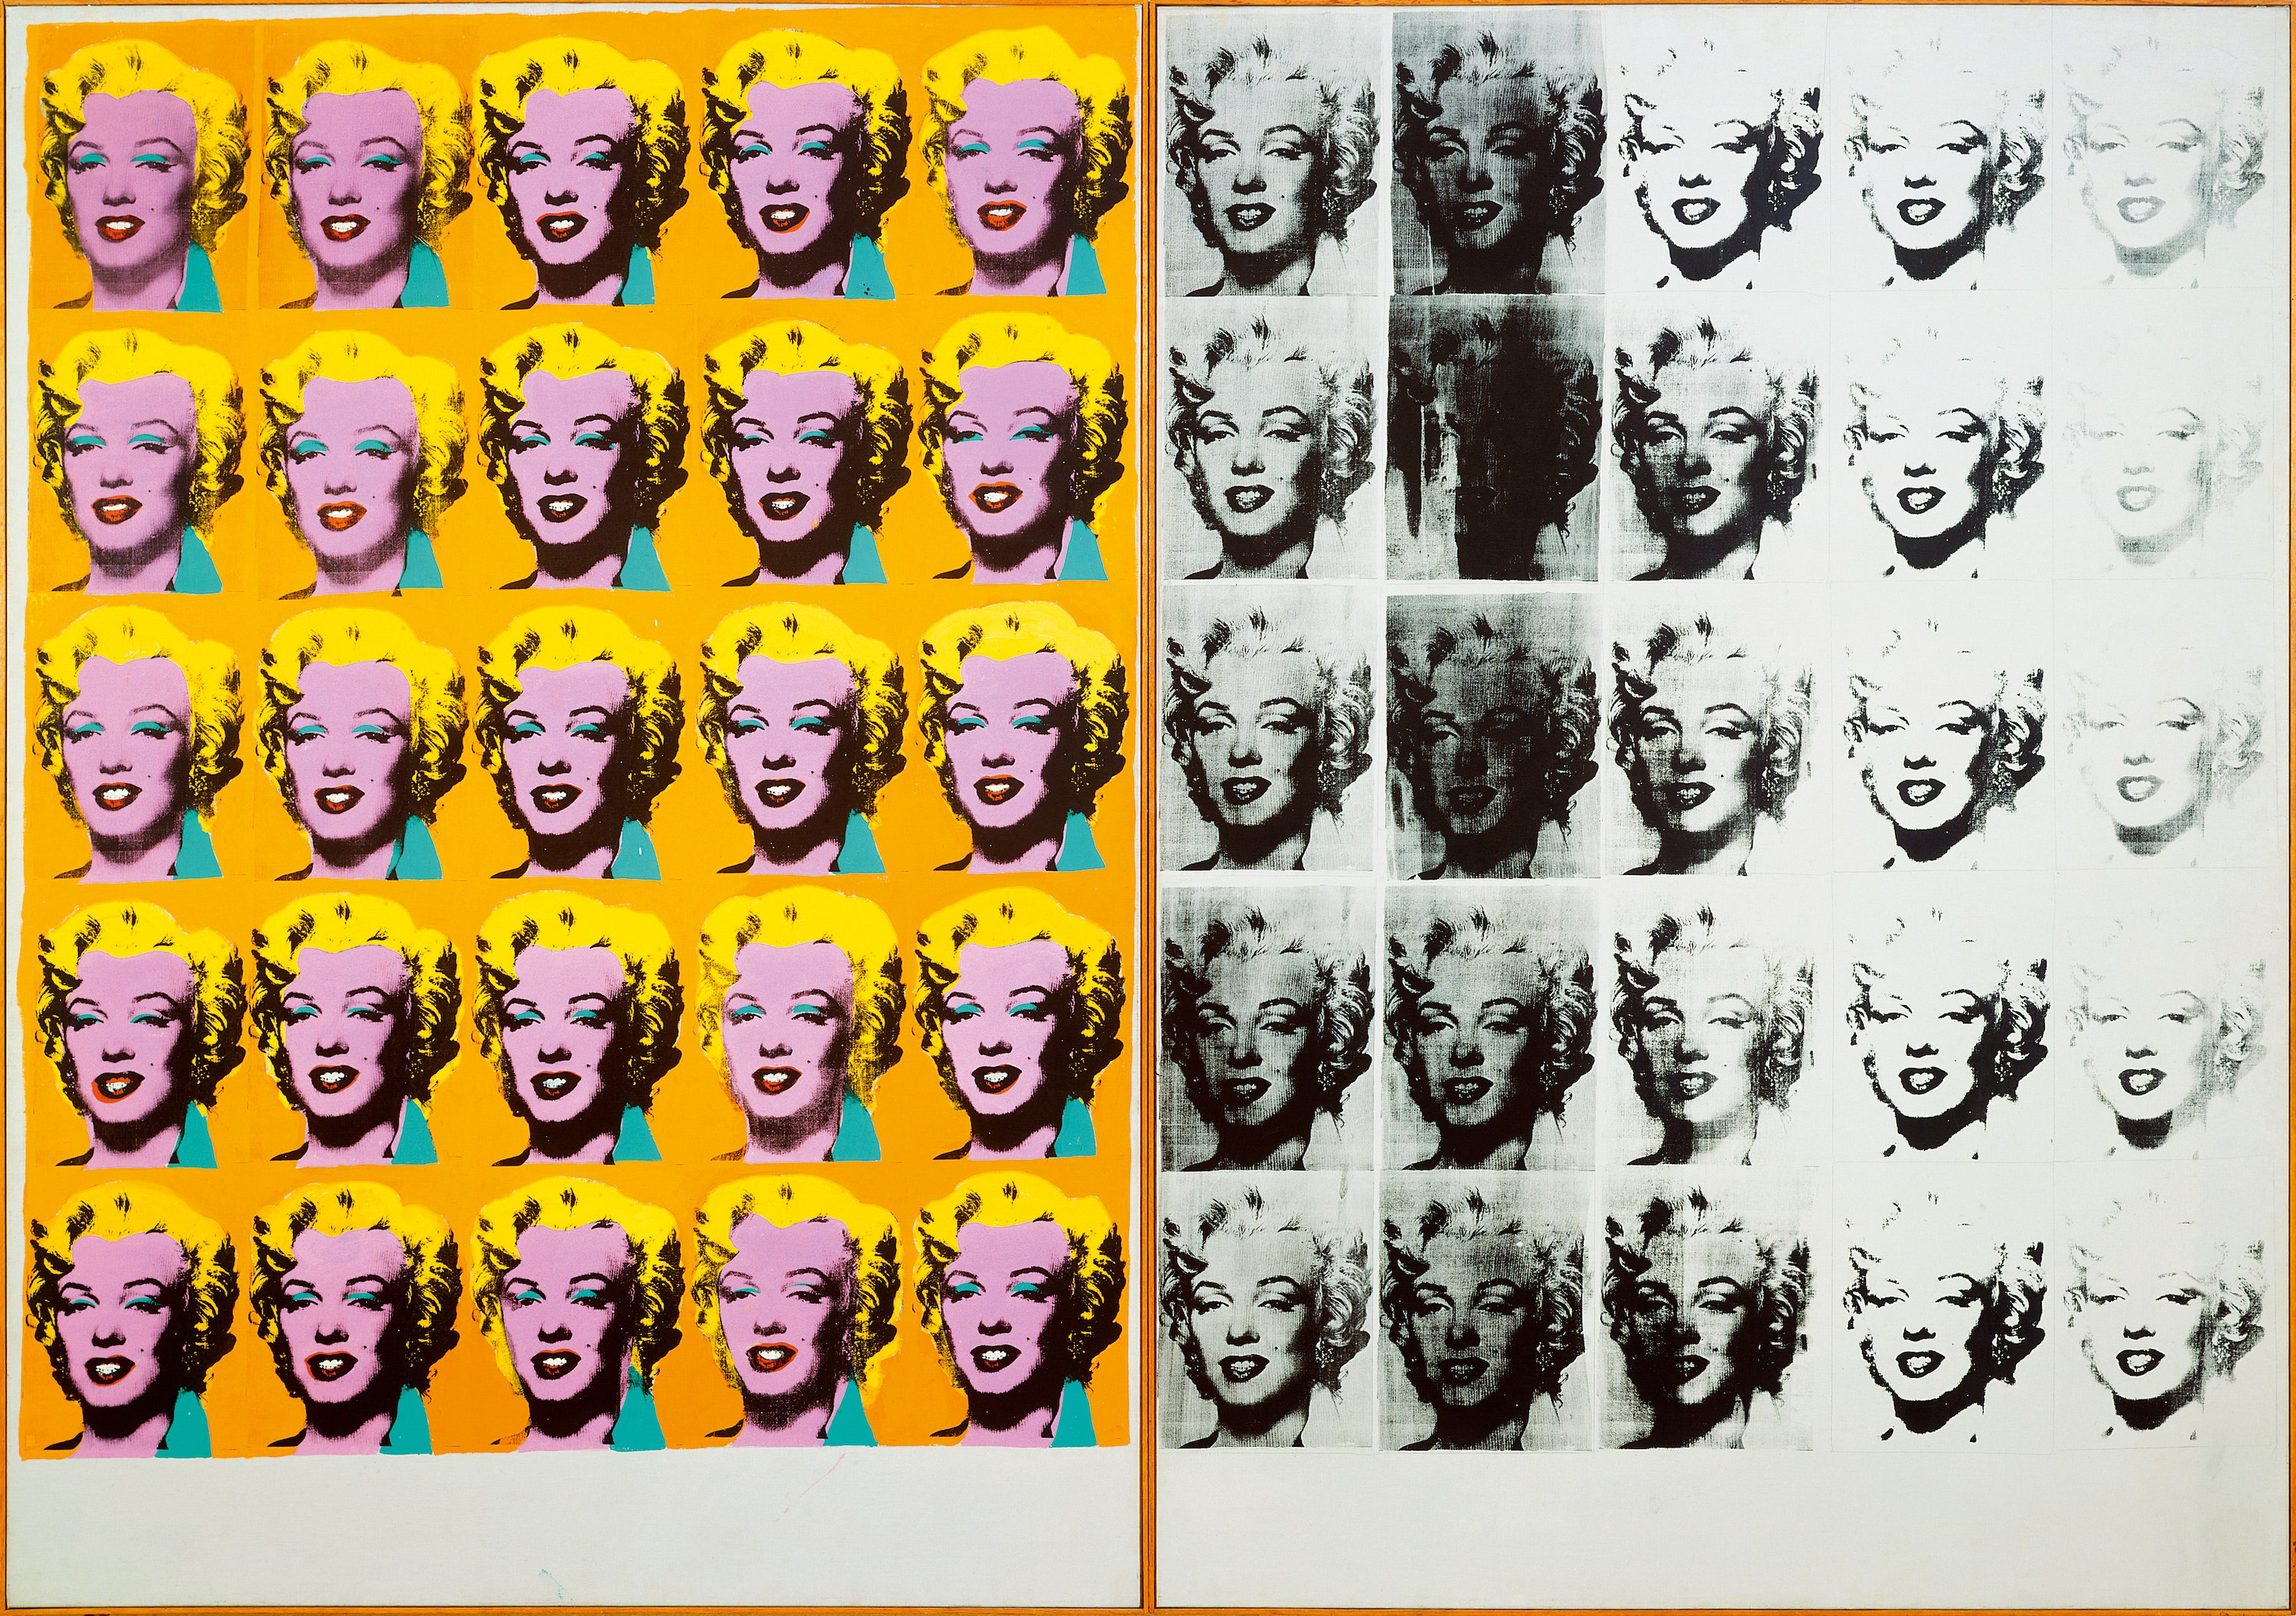 Discover Andy Warhol's Work Through This Virtual Tour